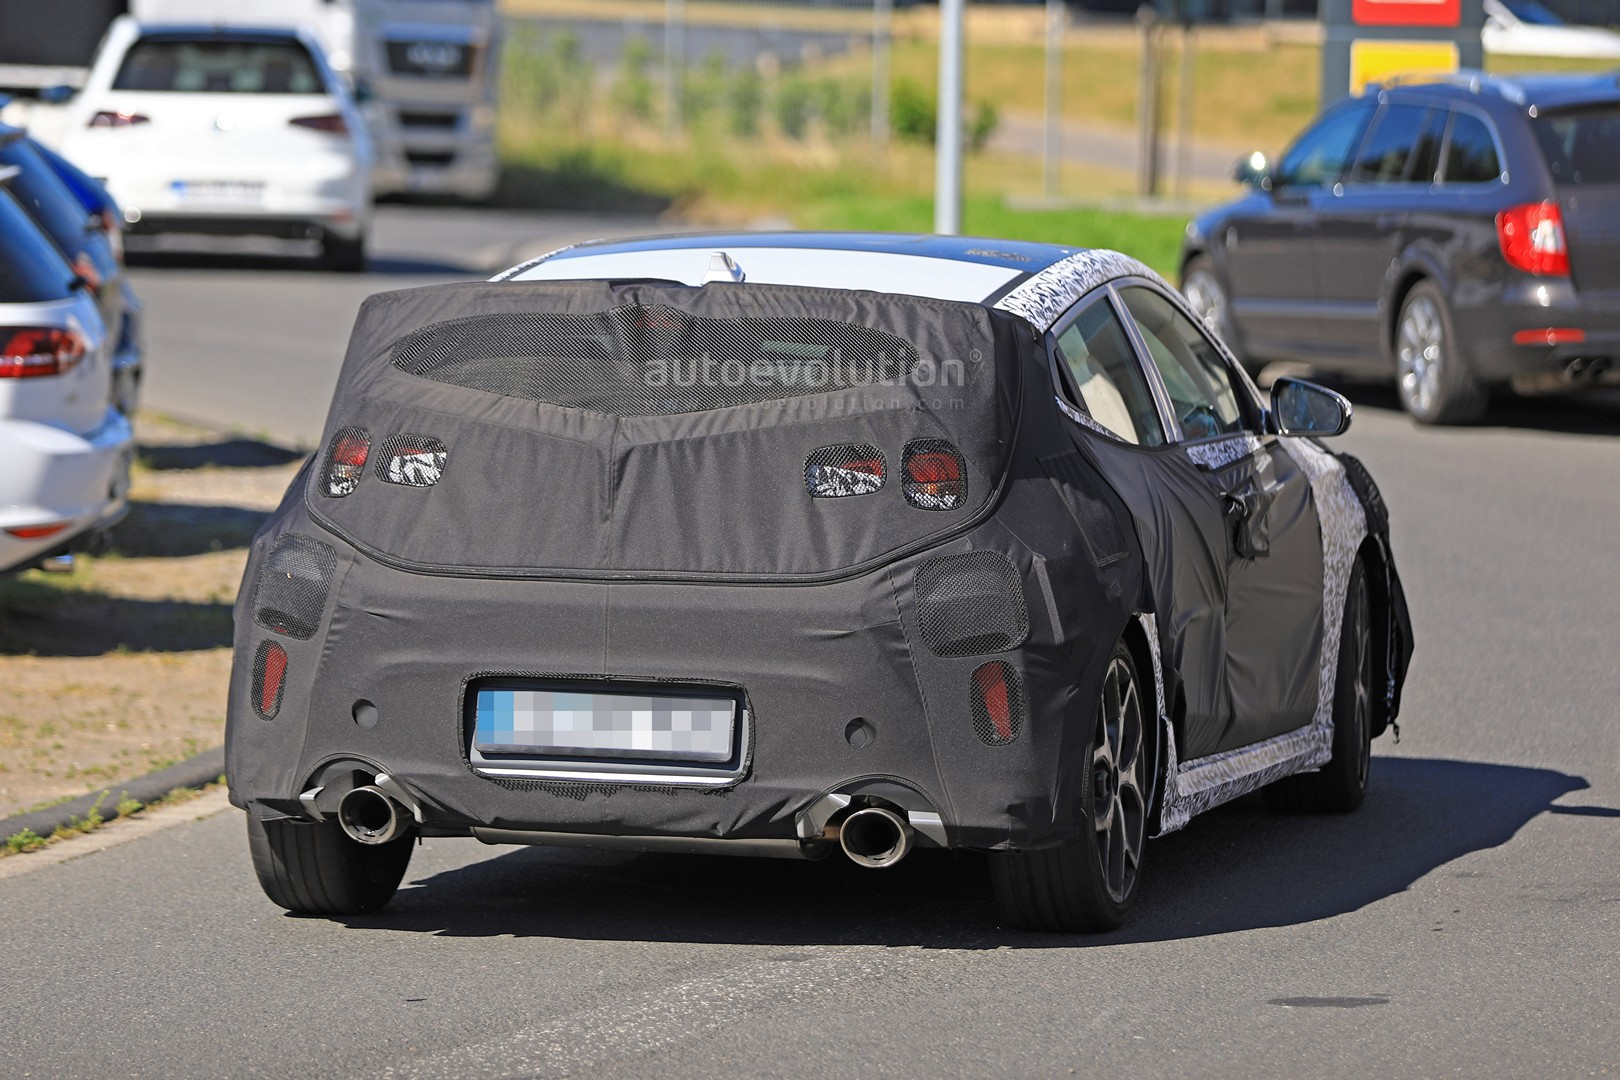 2019 Hyundai Veloster N Spied with Massive Exhaust Pipes, Will